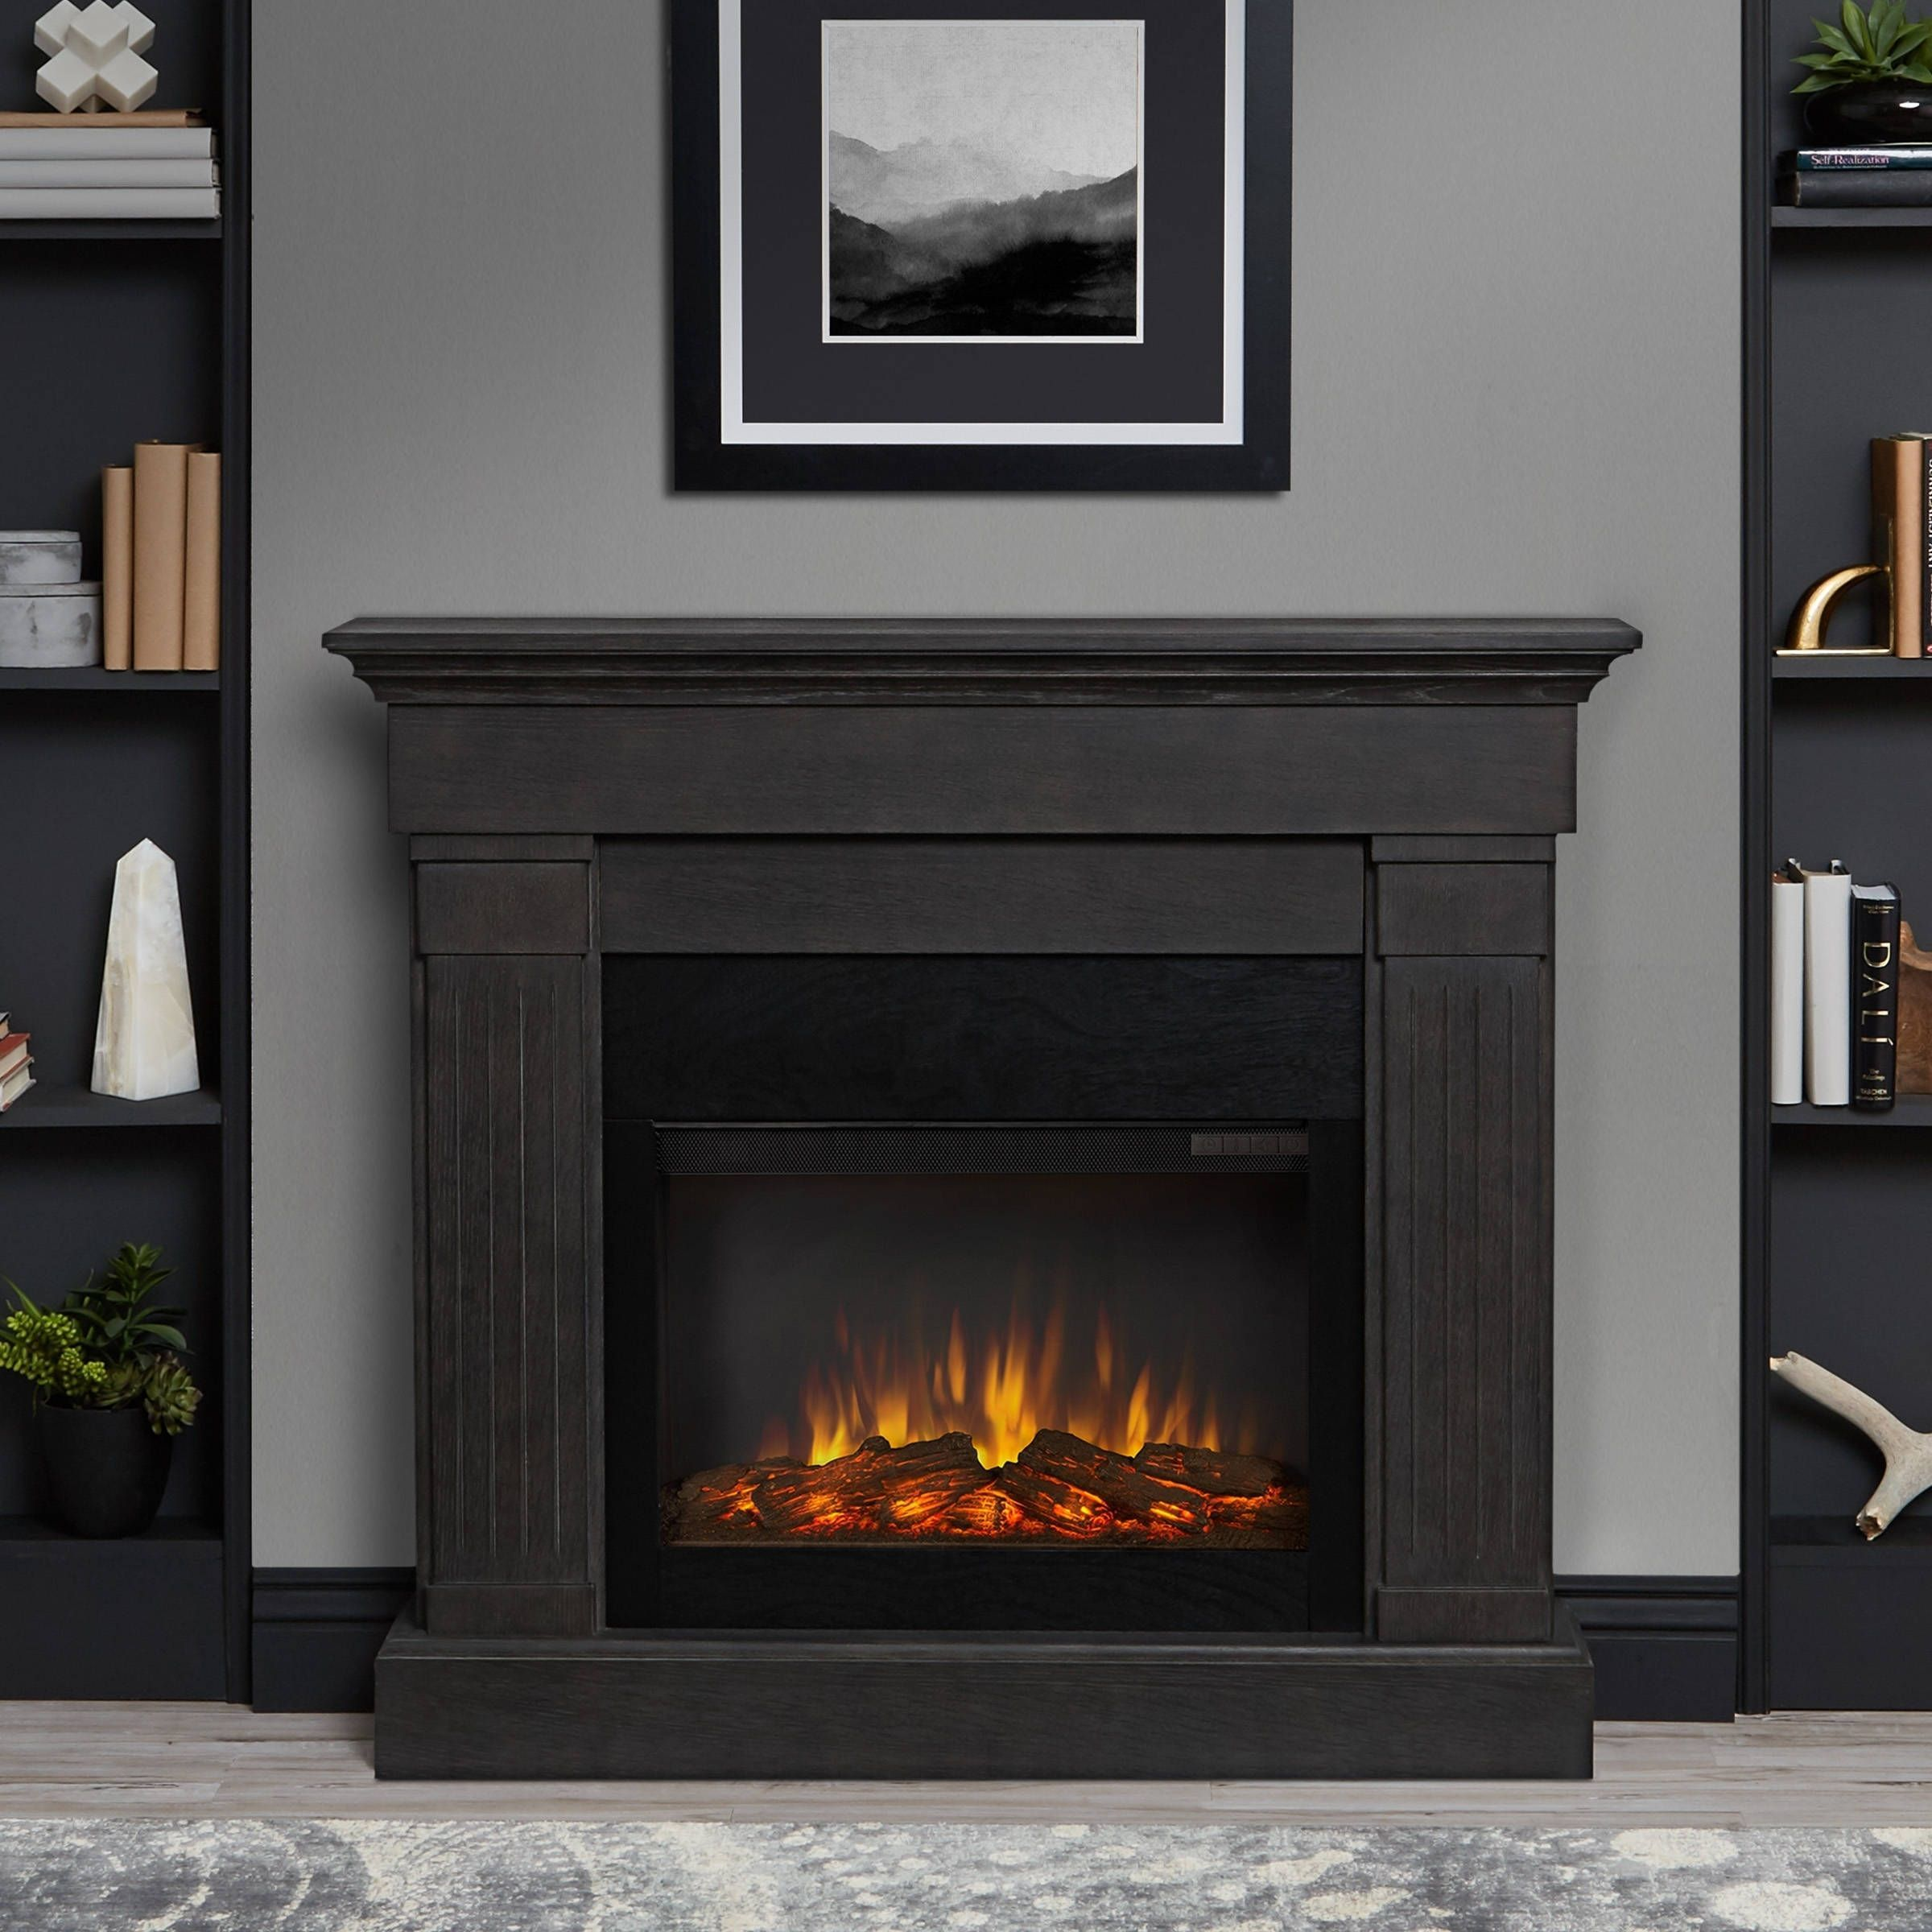 real flame crawford electric fireplace gray 47 4x 9 5 x 41 9 grey rh pinterest com Fireplace Metal Firebox Wood Fireplaces Product